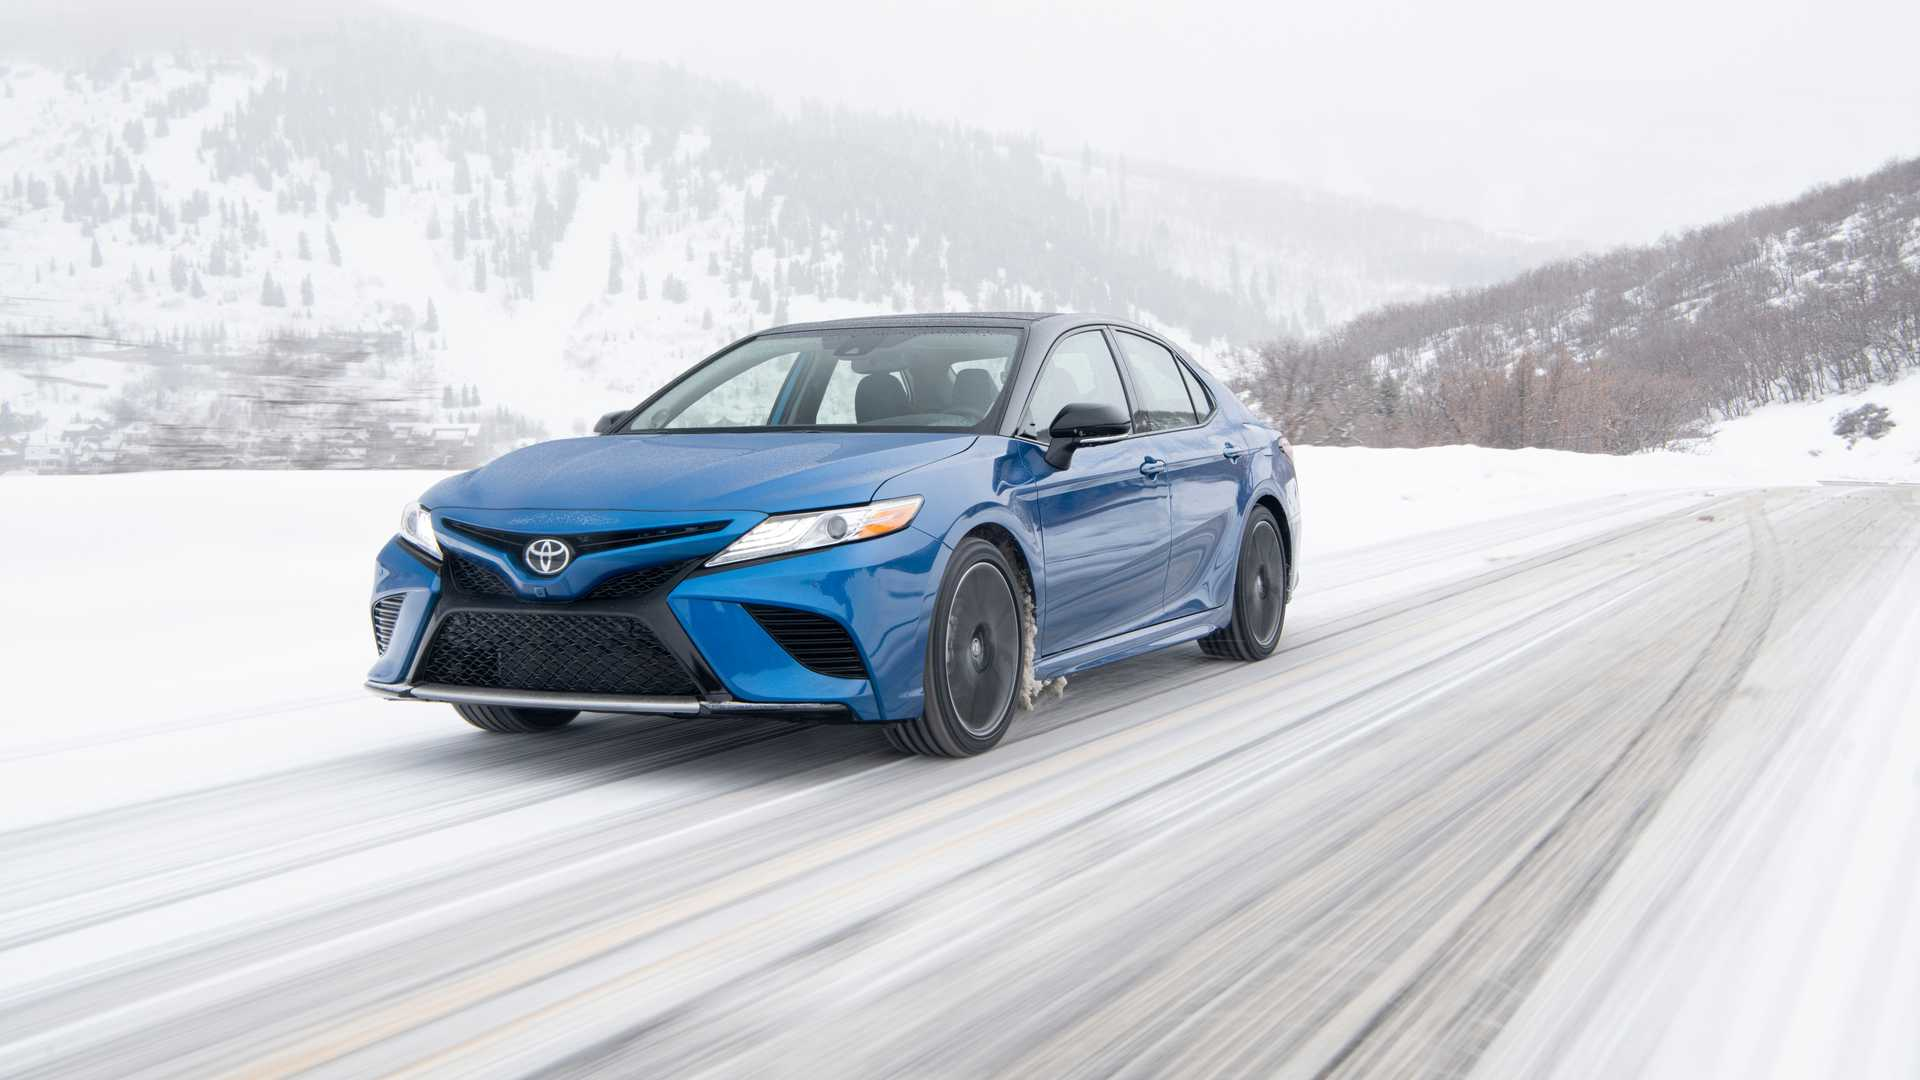 2020 Toyota Camry XSE AWD Front Three-Quarter Wallpapers (3)